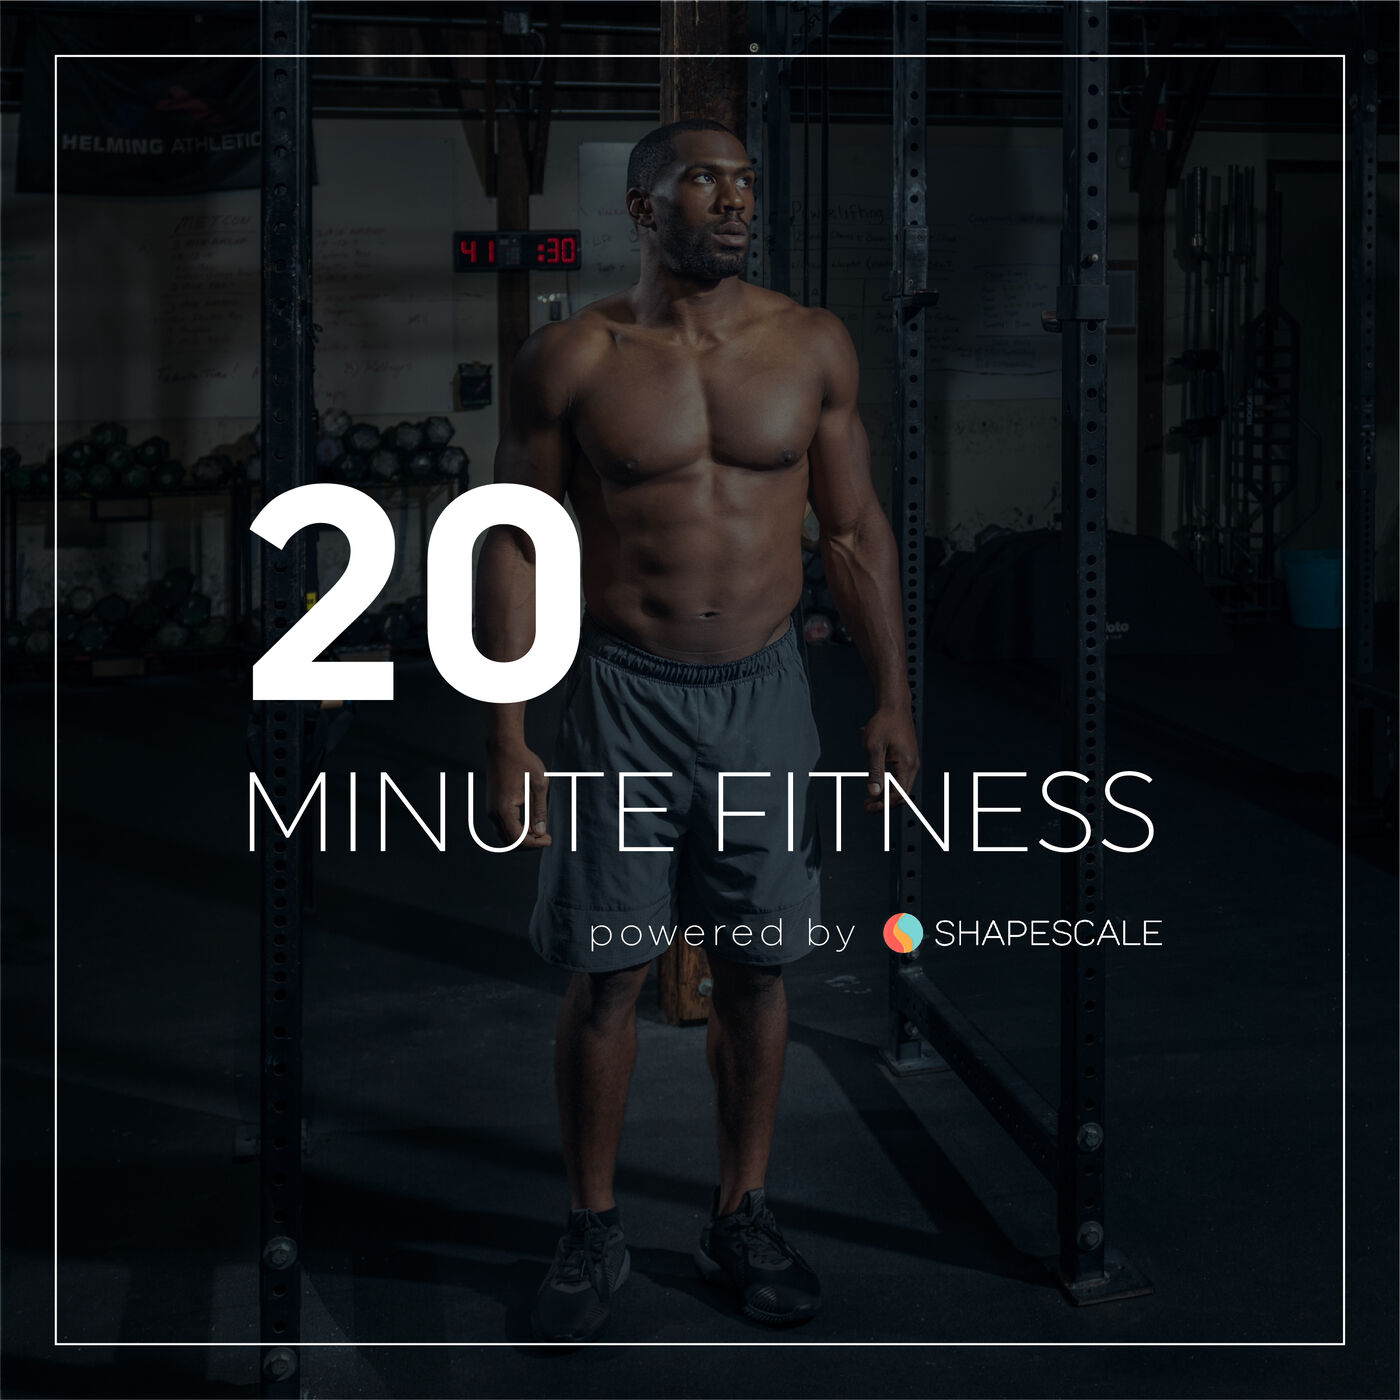 Tips About Nutrition For Losing Fat & The Biomarkers You Should Track With The Fat-Burning Man - 20 Minutes Fitness Episode #235